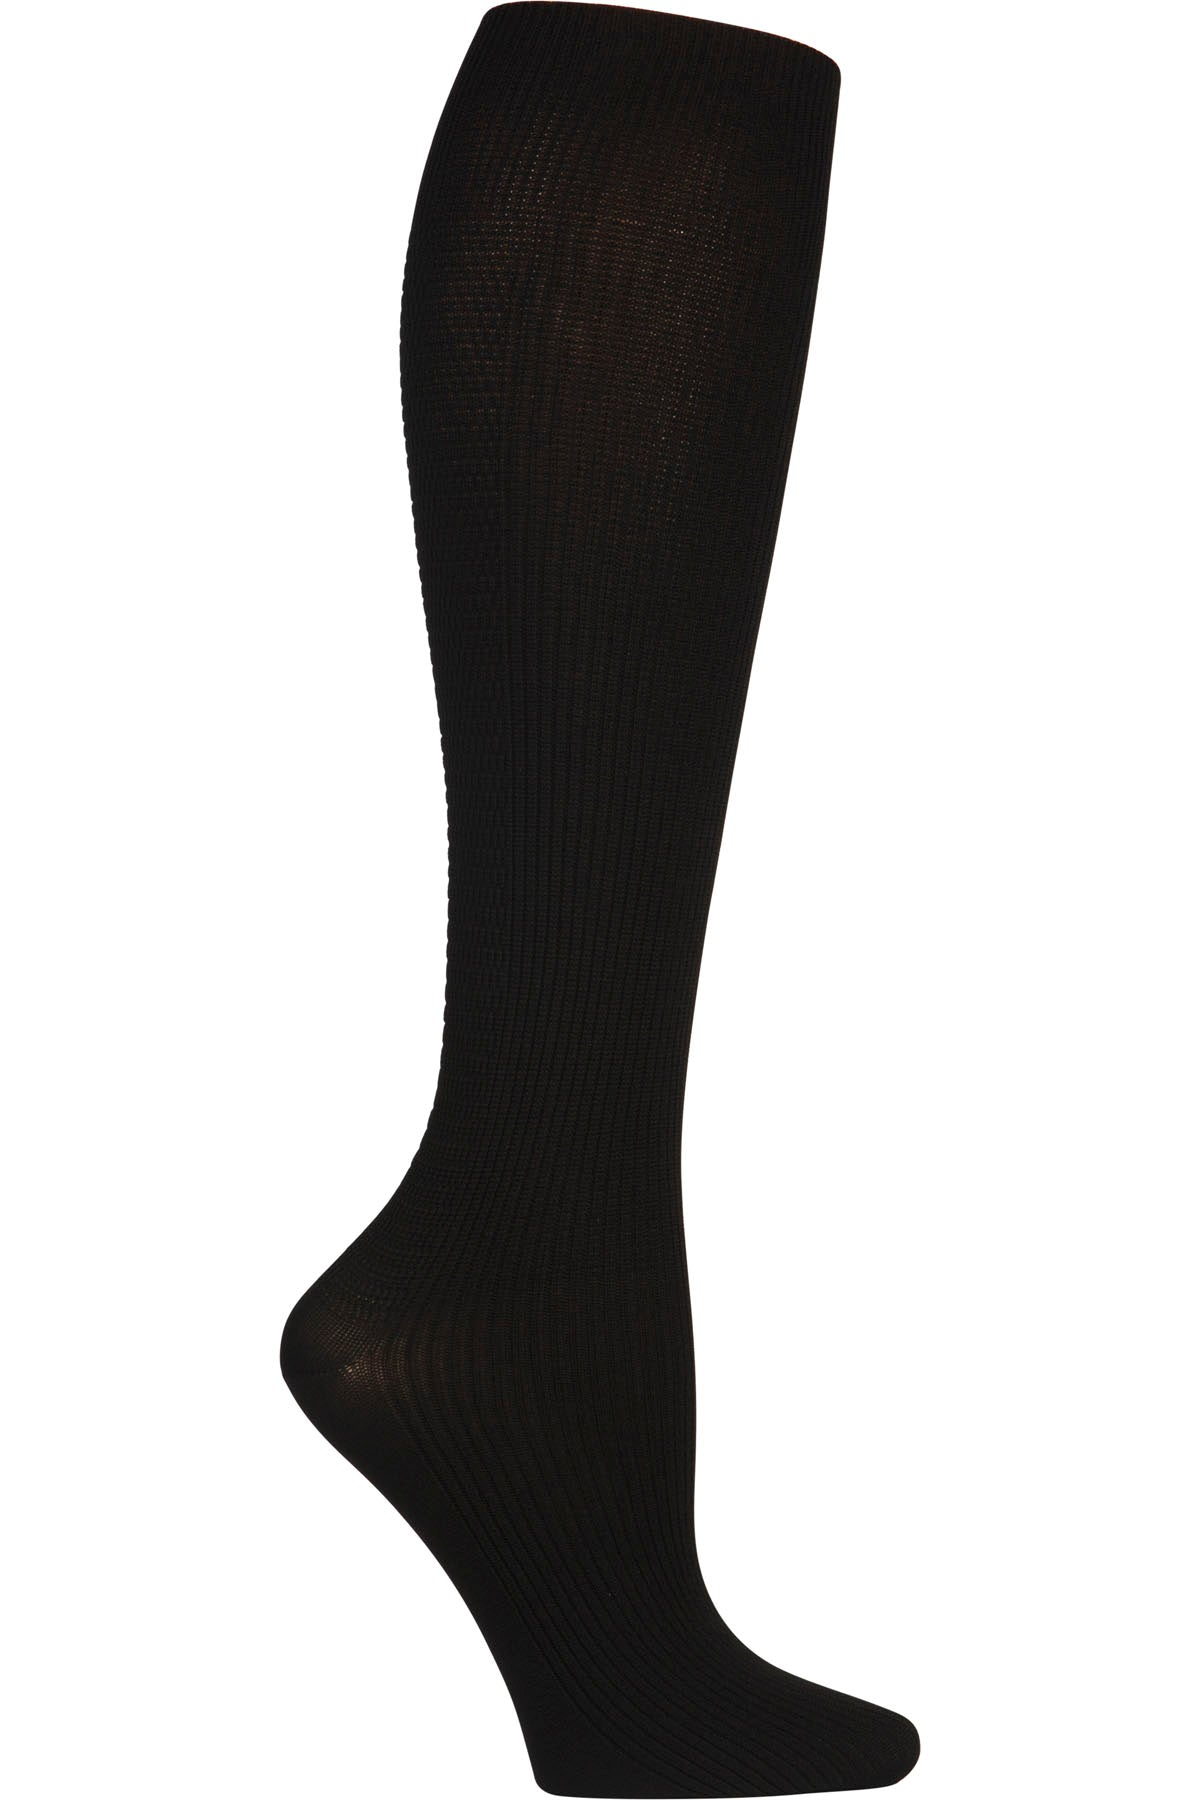 Cherokee Mild Compression Support Socks 8-12 mmHg in Black at Parker's Clothing and Shoes.